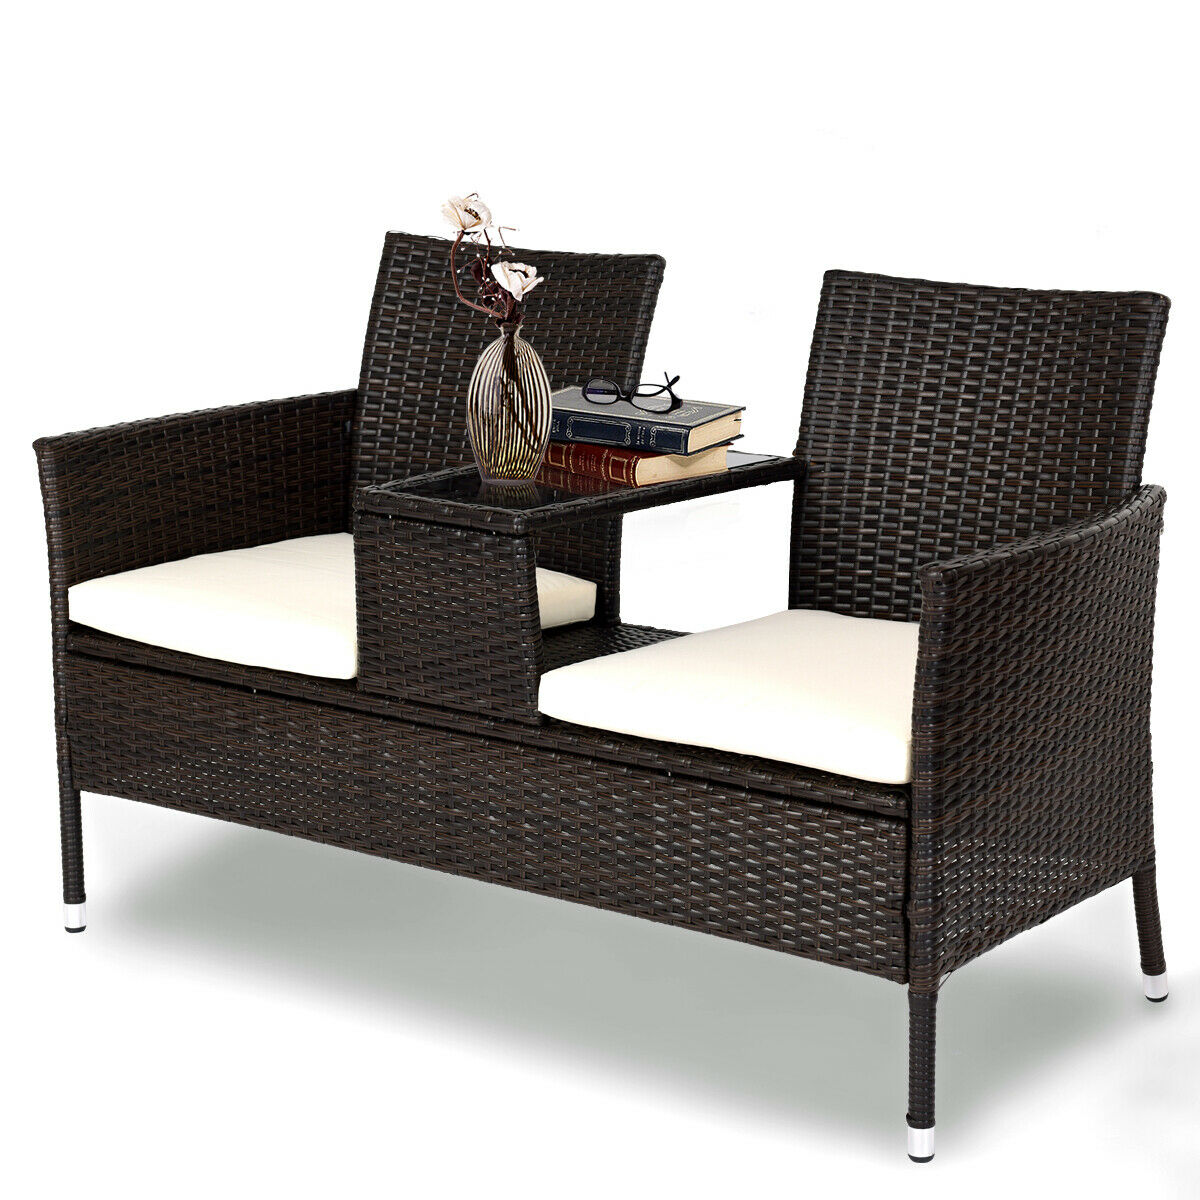 Gymax Loveseat Sofa Table Chairs Cushioned Patio Rattan Seat